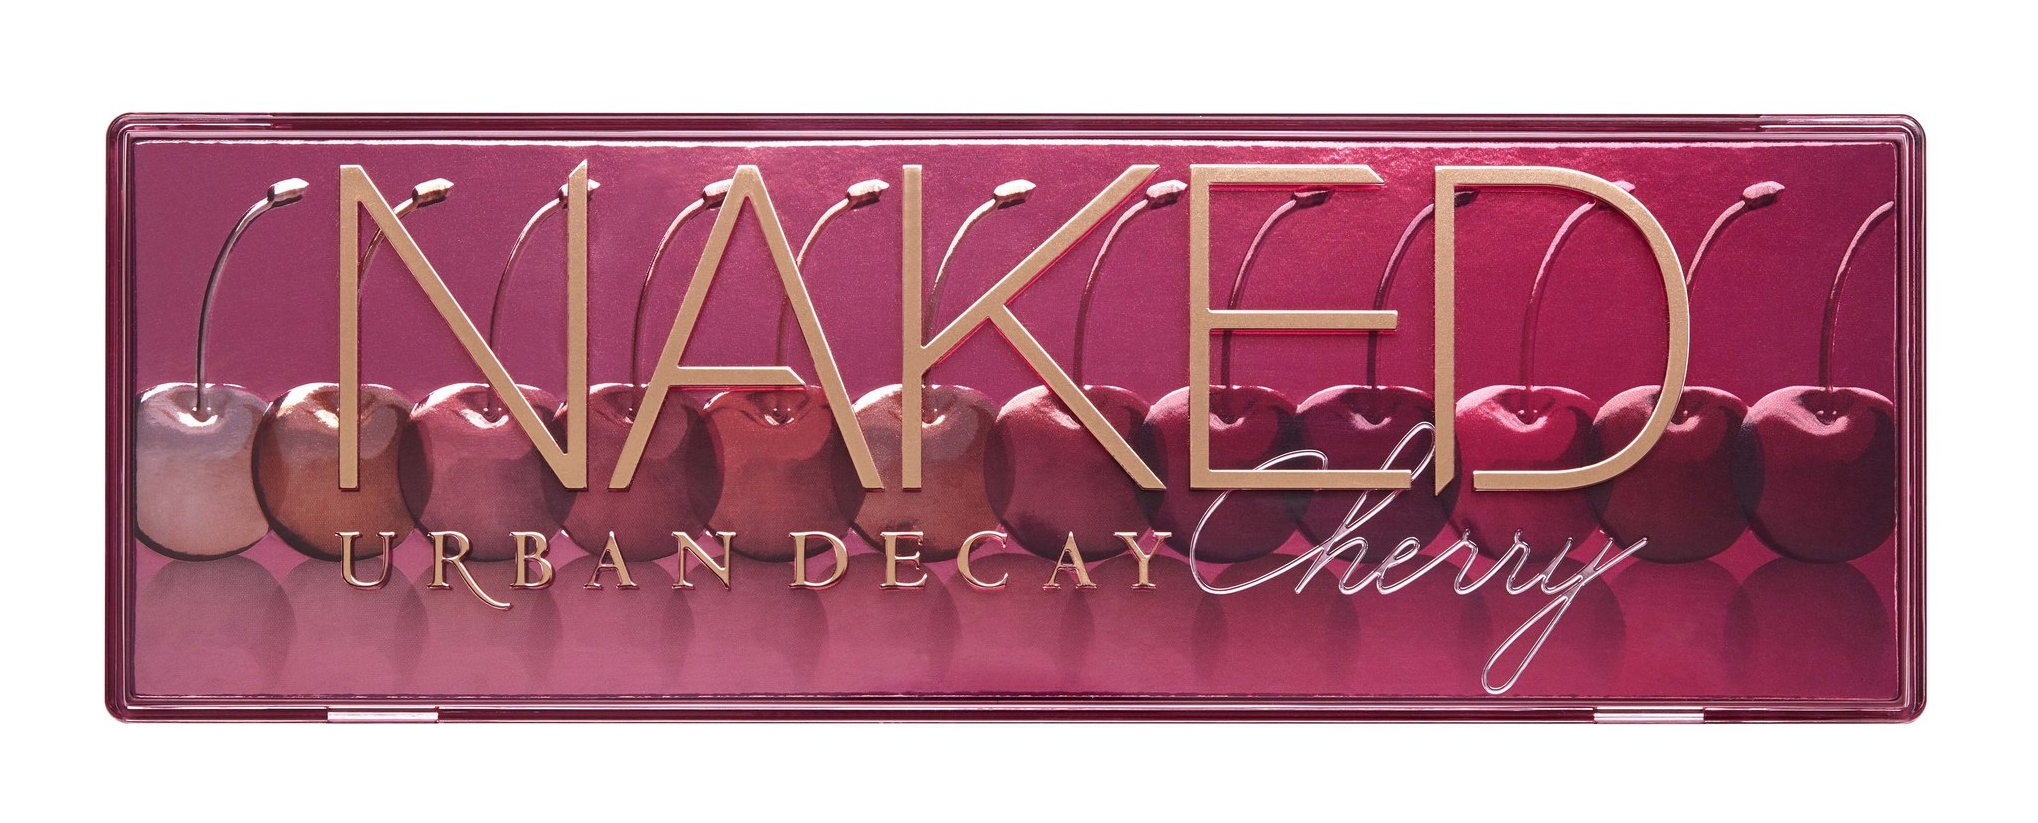 Urban Decay Naked Cherry Palette Collection - Naked Cherry Palette - Anteprima, info, prezzo, data di uscita, review, recensione, swatches - Packaging